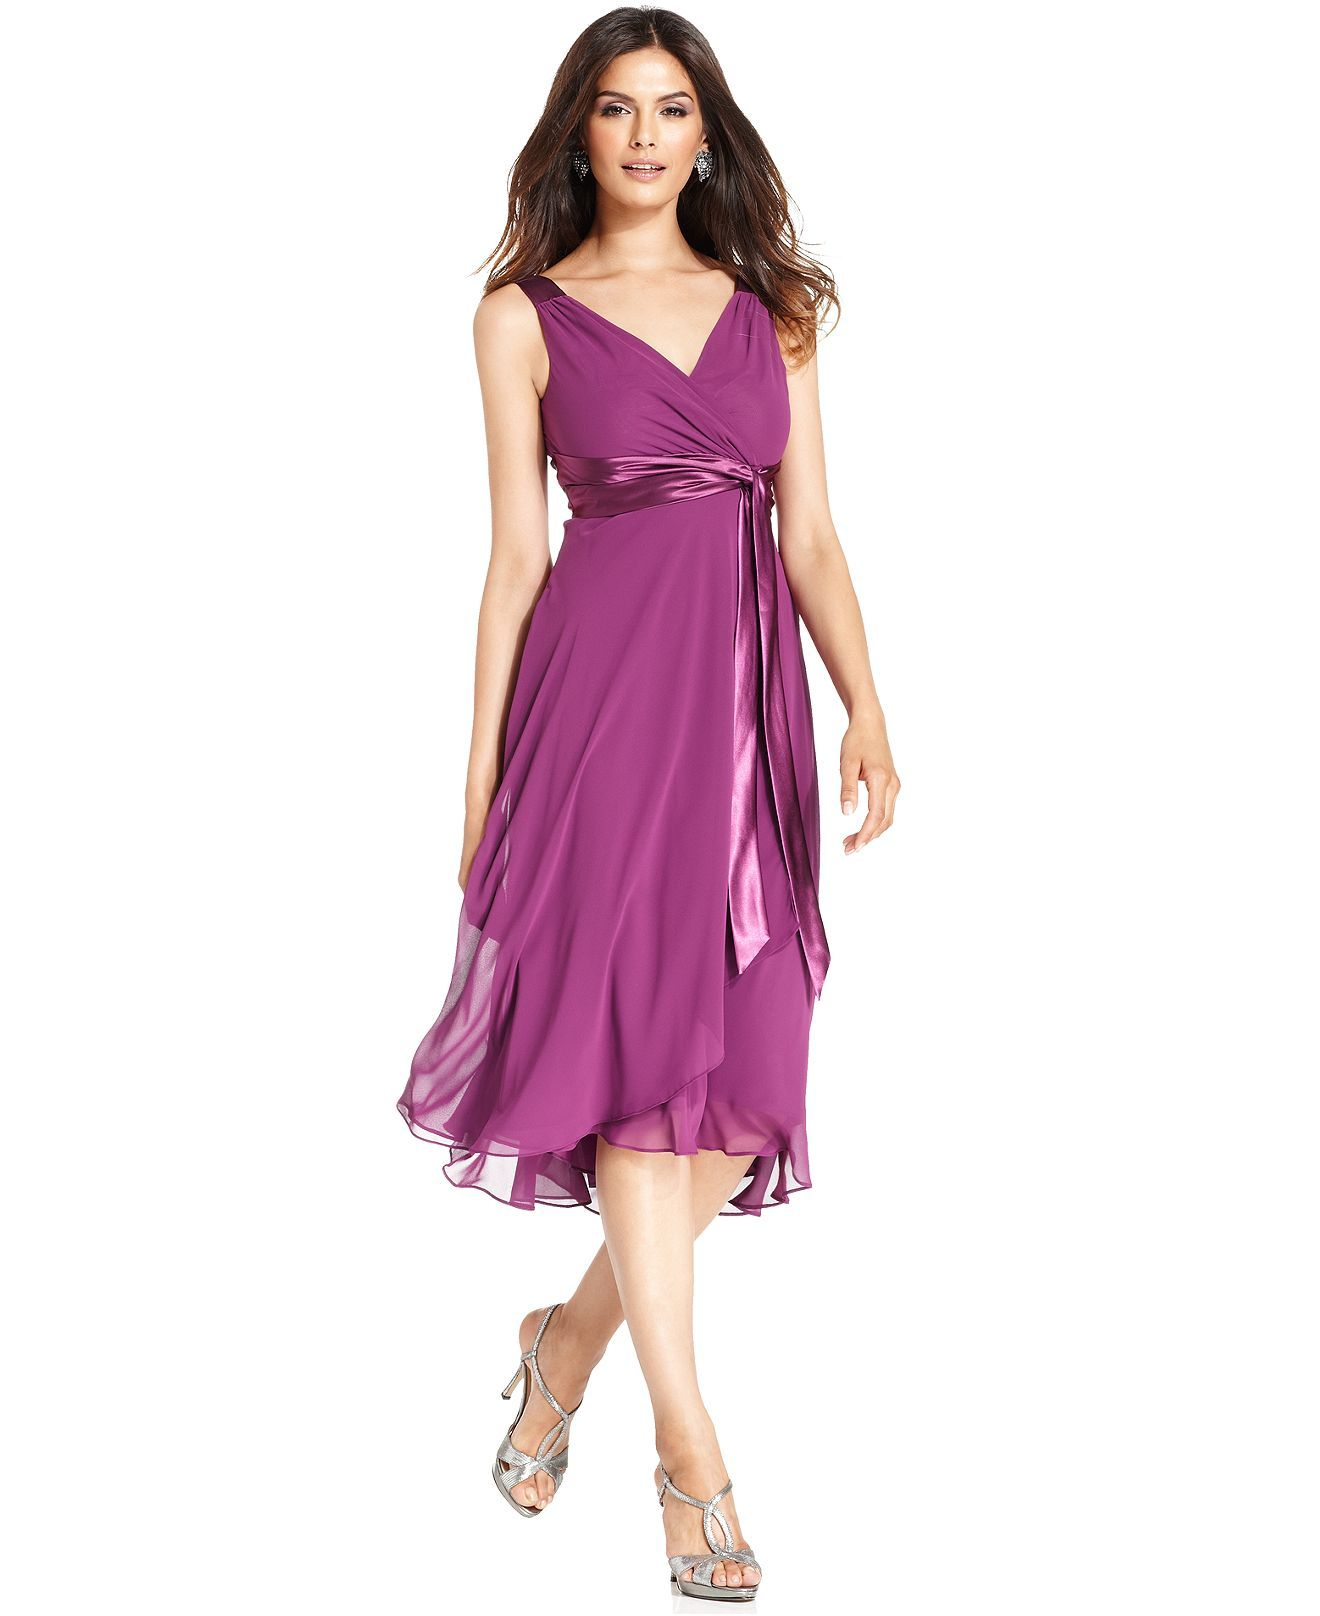 Evan picone dress sleeveless satin tie bridesmaid dresses evan picone dress sleeveless satin tie bridesmaid dresses women macys paradise purple ombrellifo Images